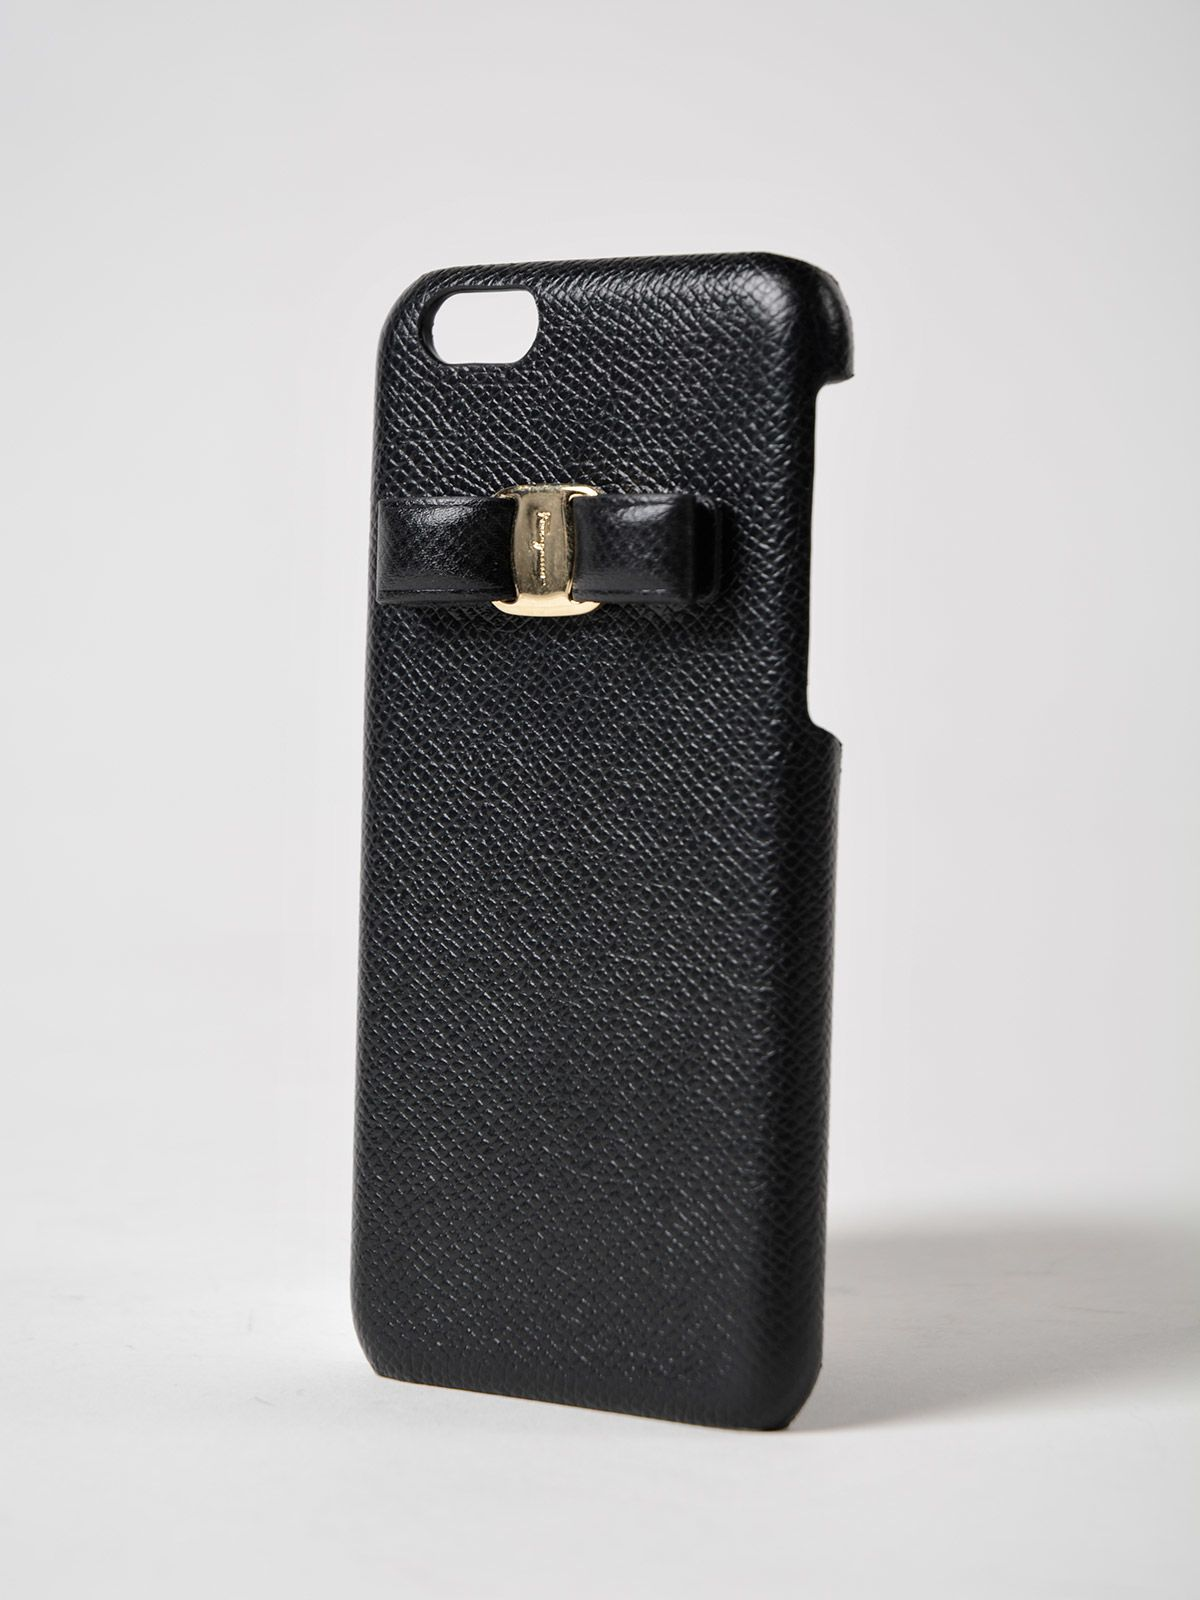 iPhone Cases On Sale, Iphone 6 Cover, Black, Leather, 2017, One size Salvatore Ferragamo